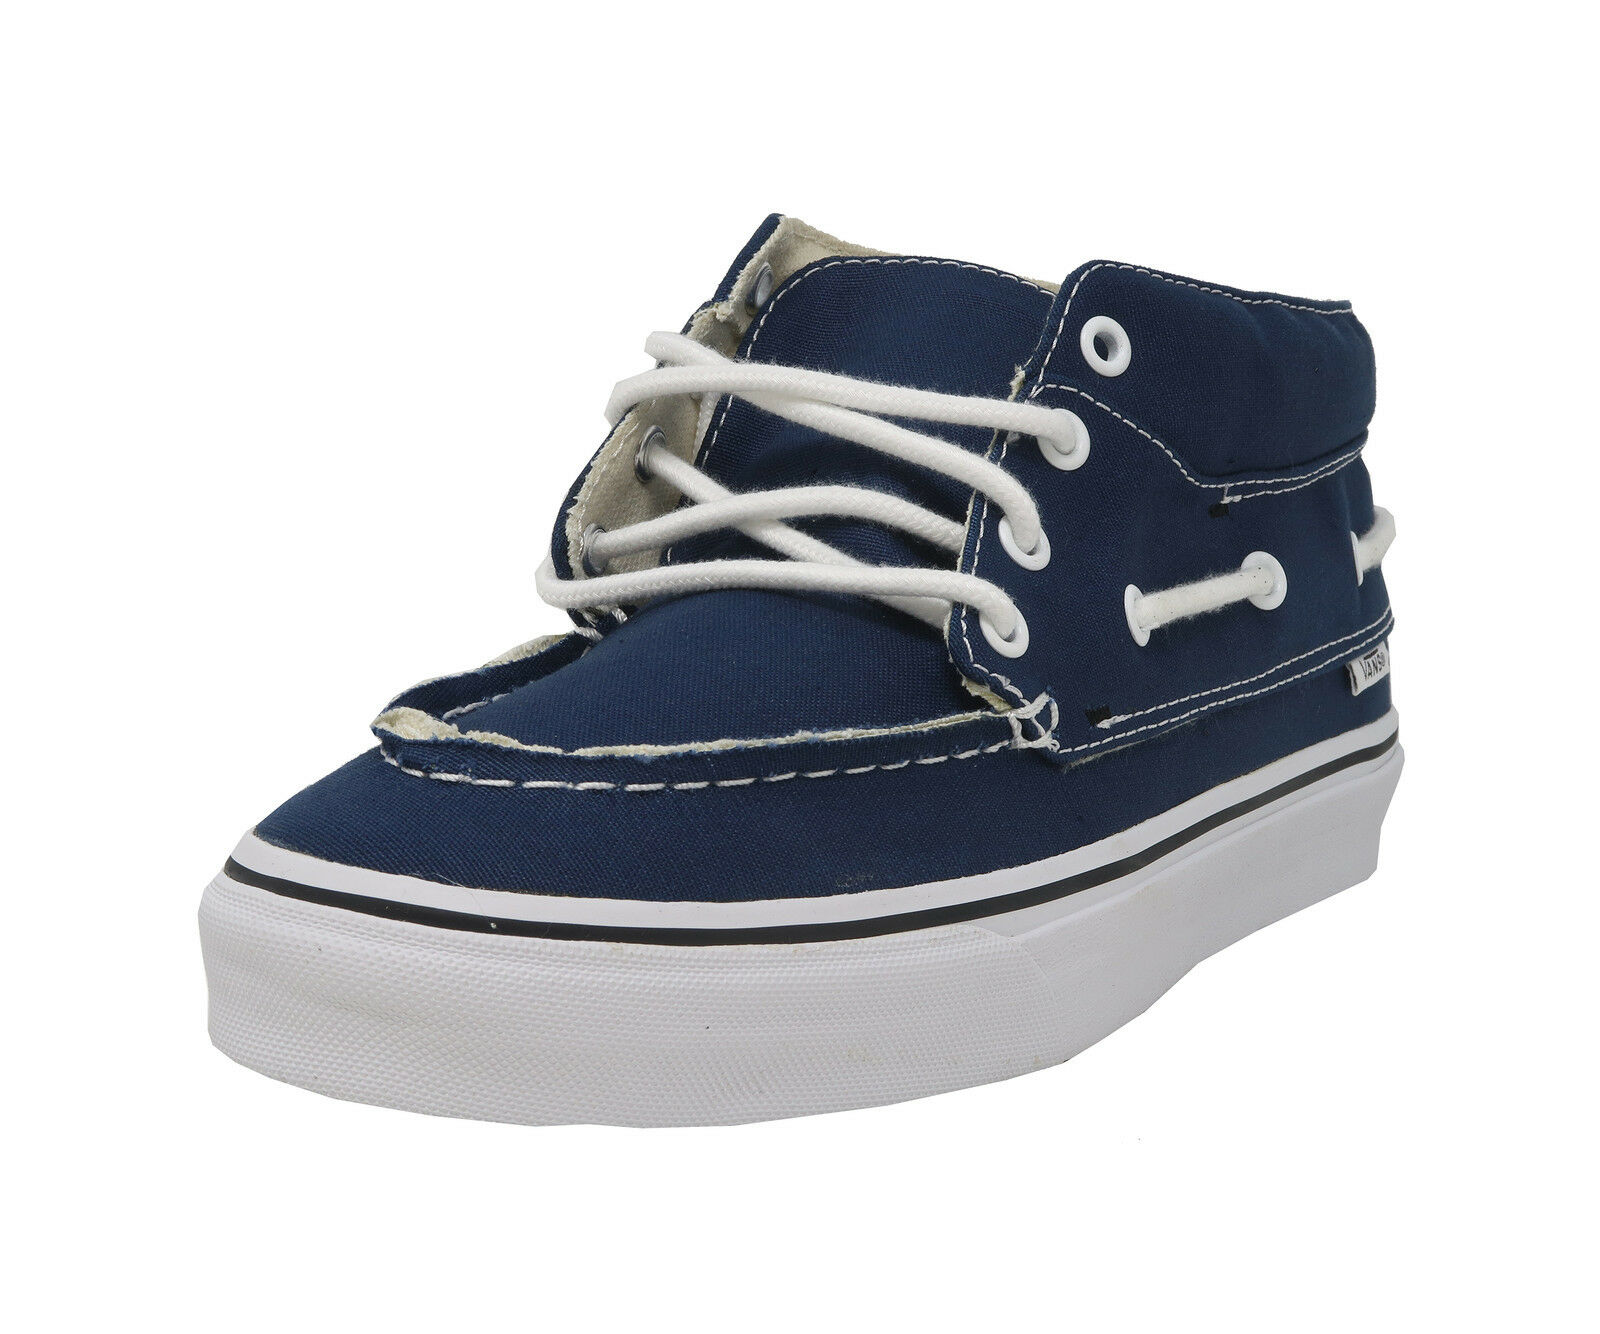 VANS Chukka Del Barco Navy bluee White Mid Top Lace Up Sneakers Casual Men shoes